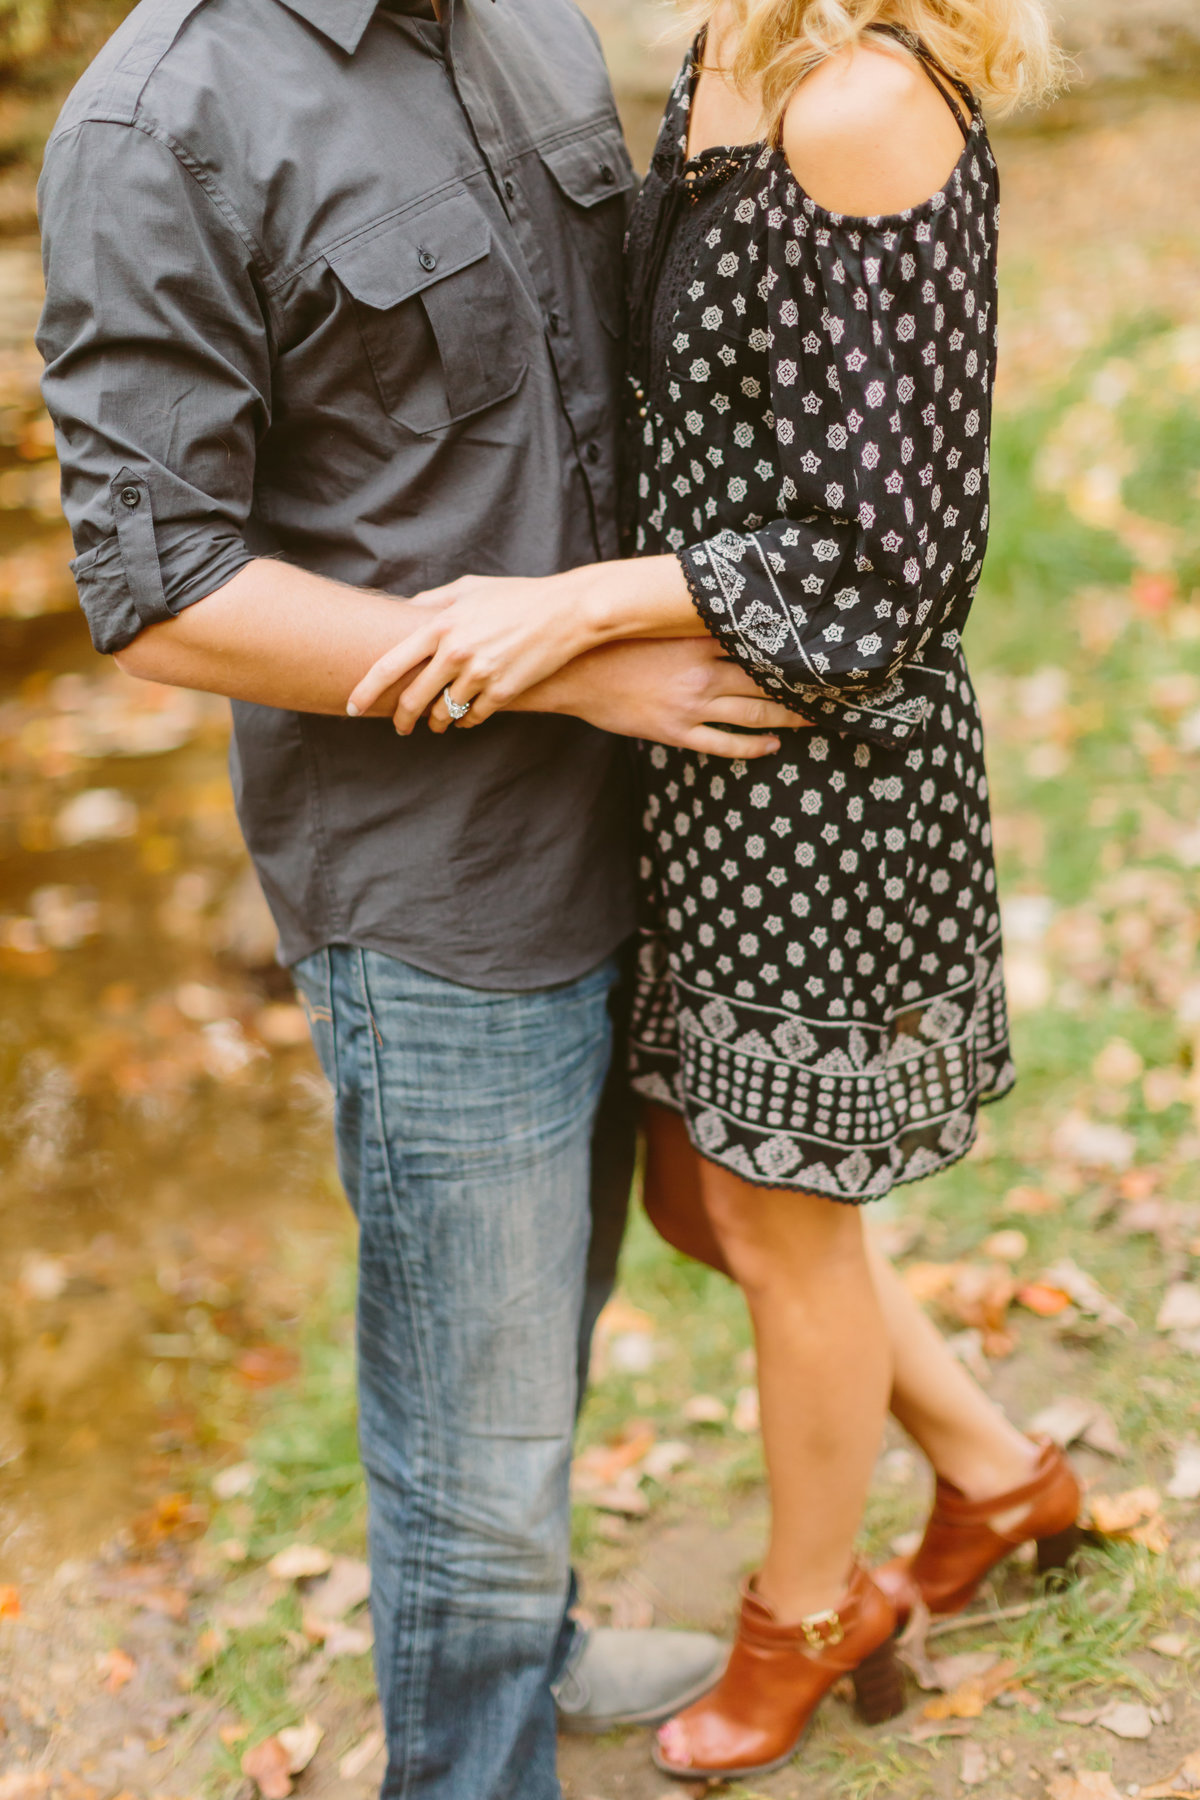 shaunae-teske-photography-engagements-25